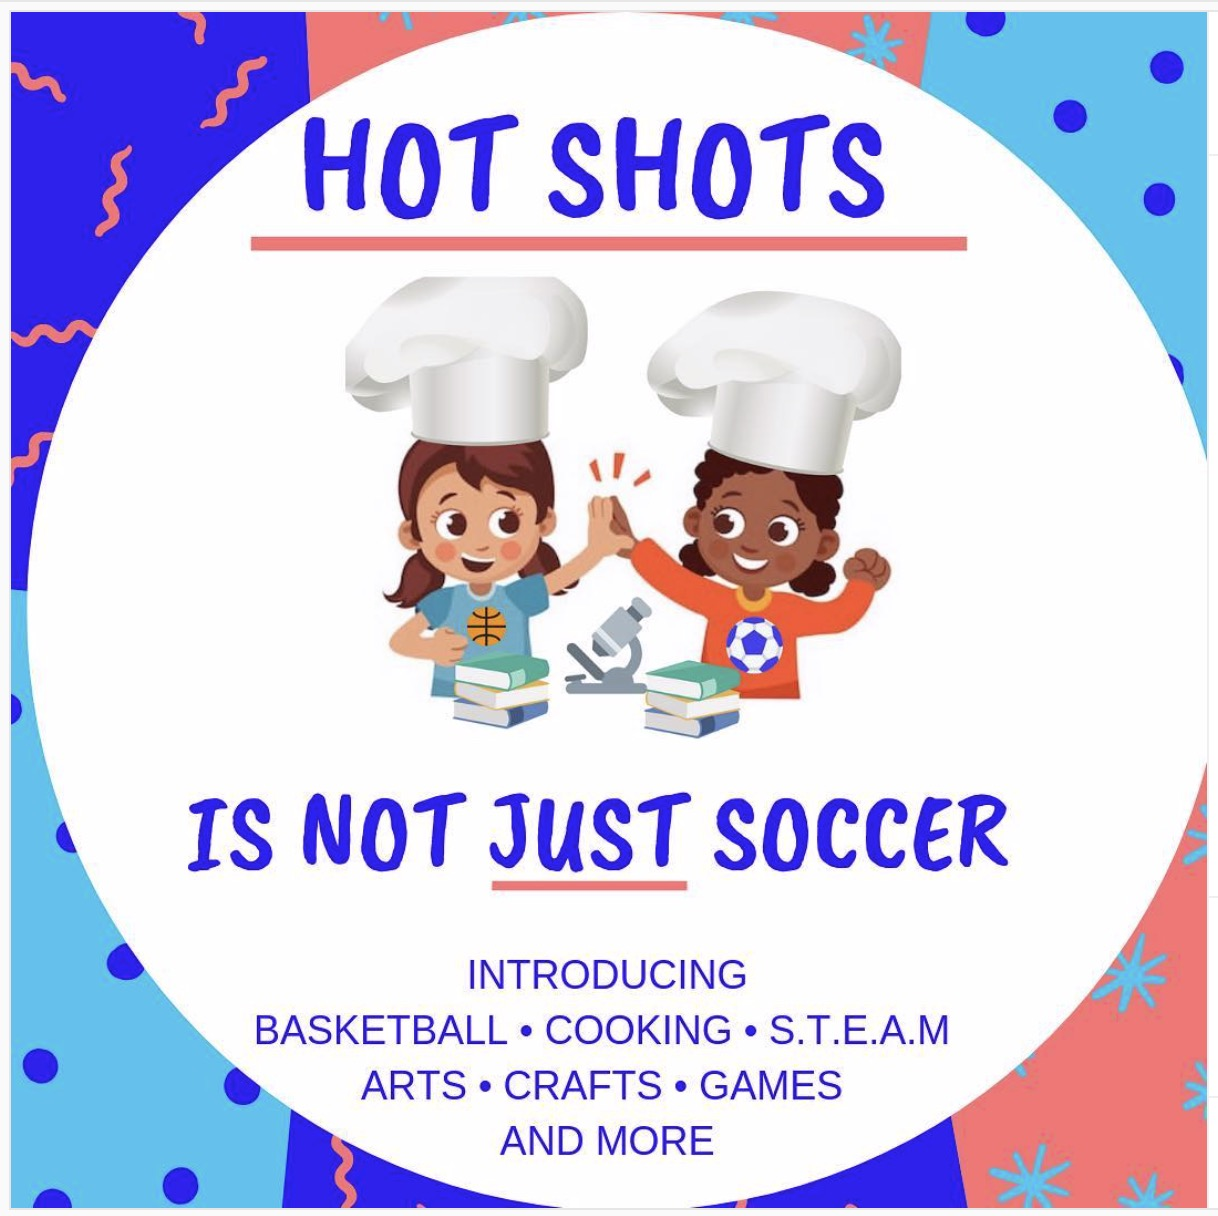 GEM Food Lab! Hot Shots is more than just soccer!